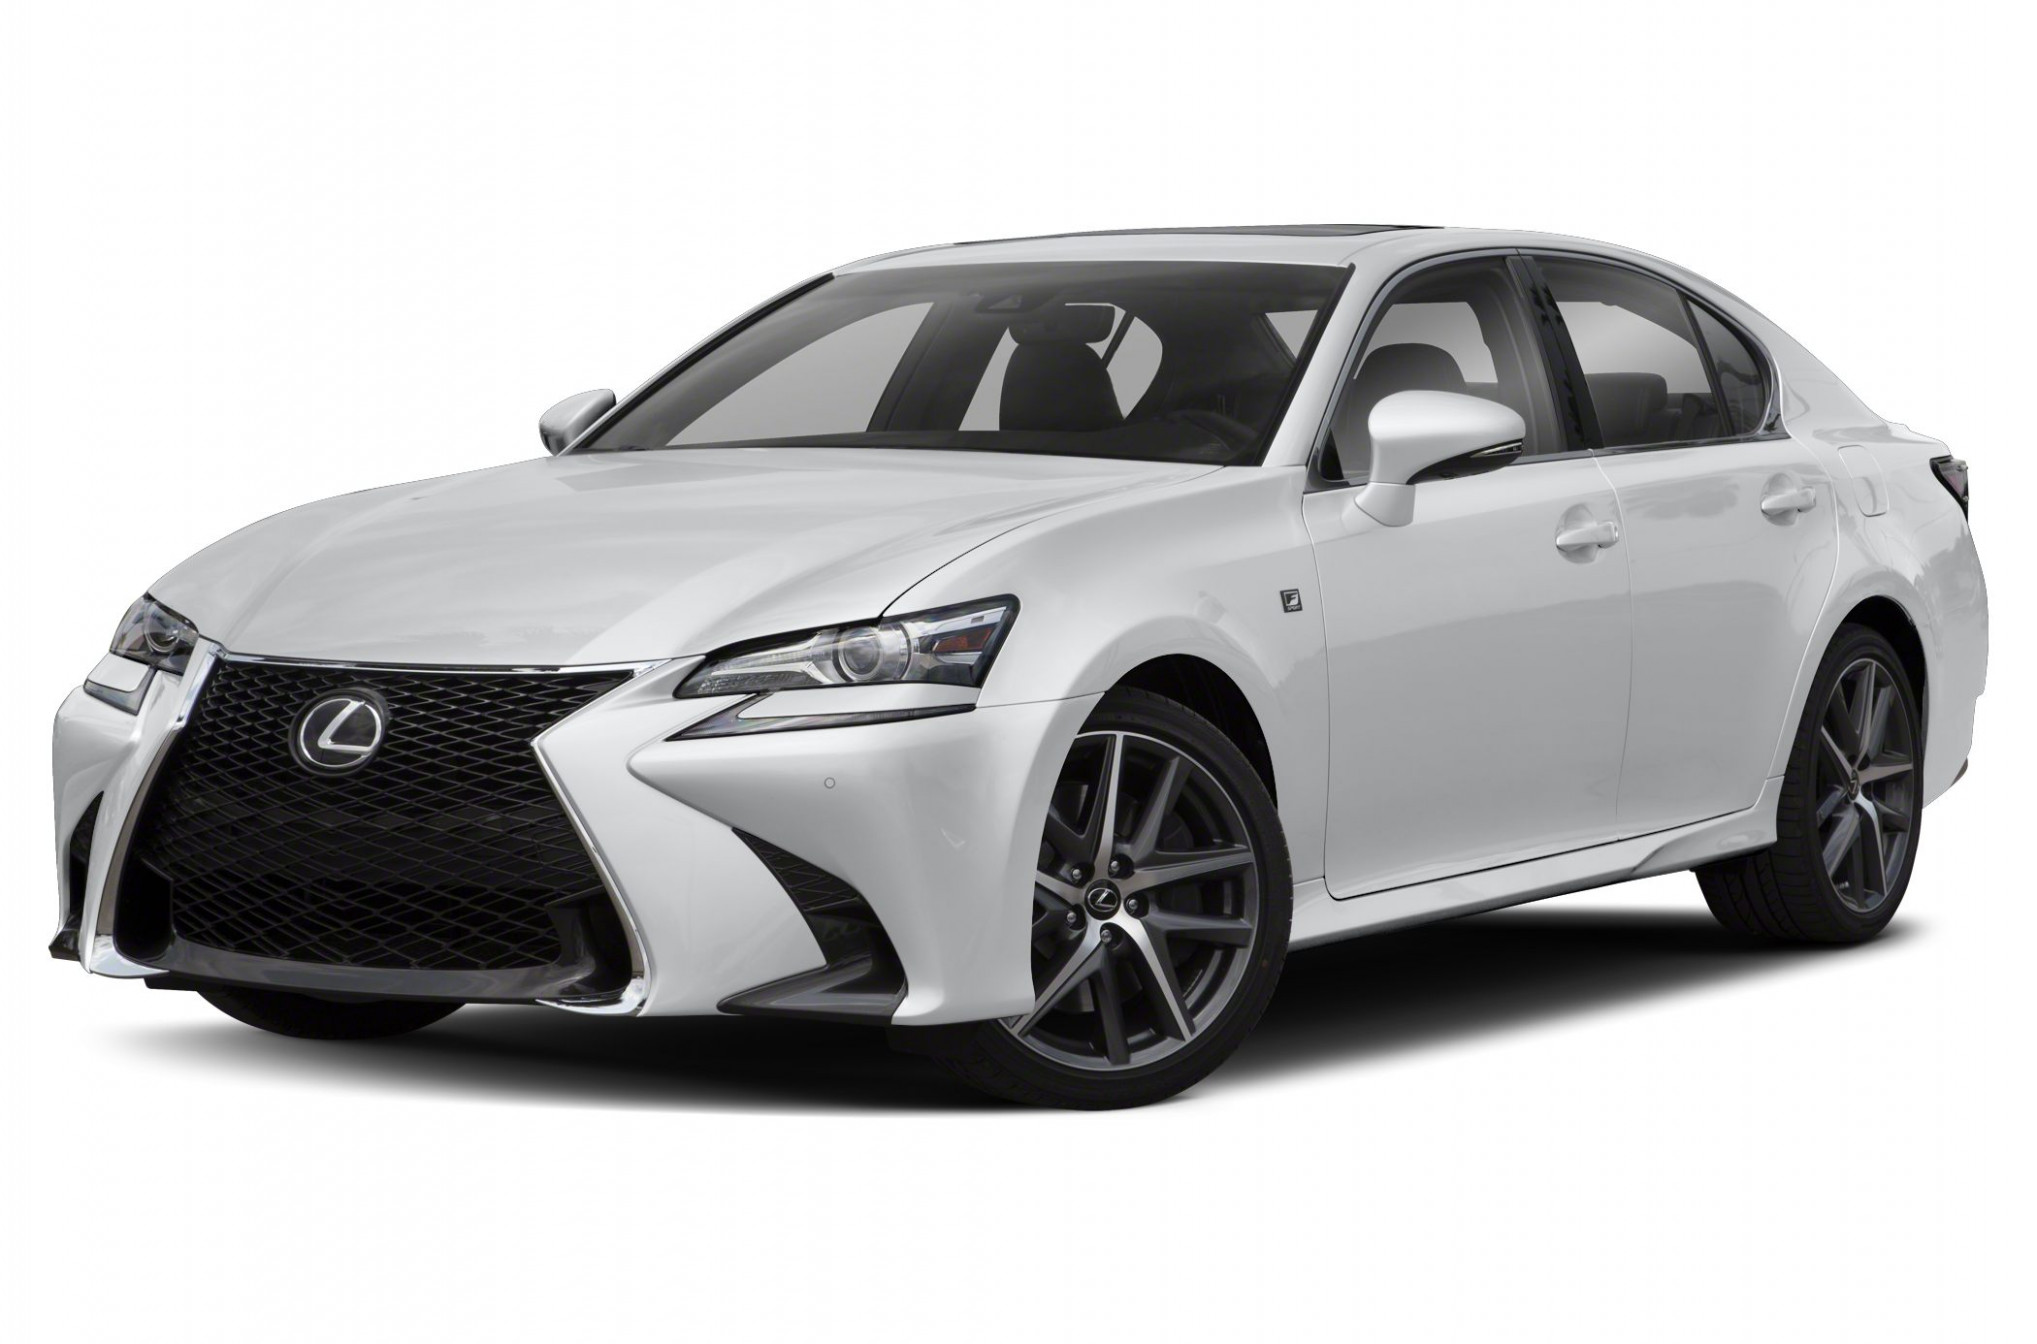 12 Lexus GS 12 F SPORT 12dr All-wheel Drive Sedan Specs and Prices